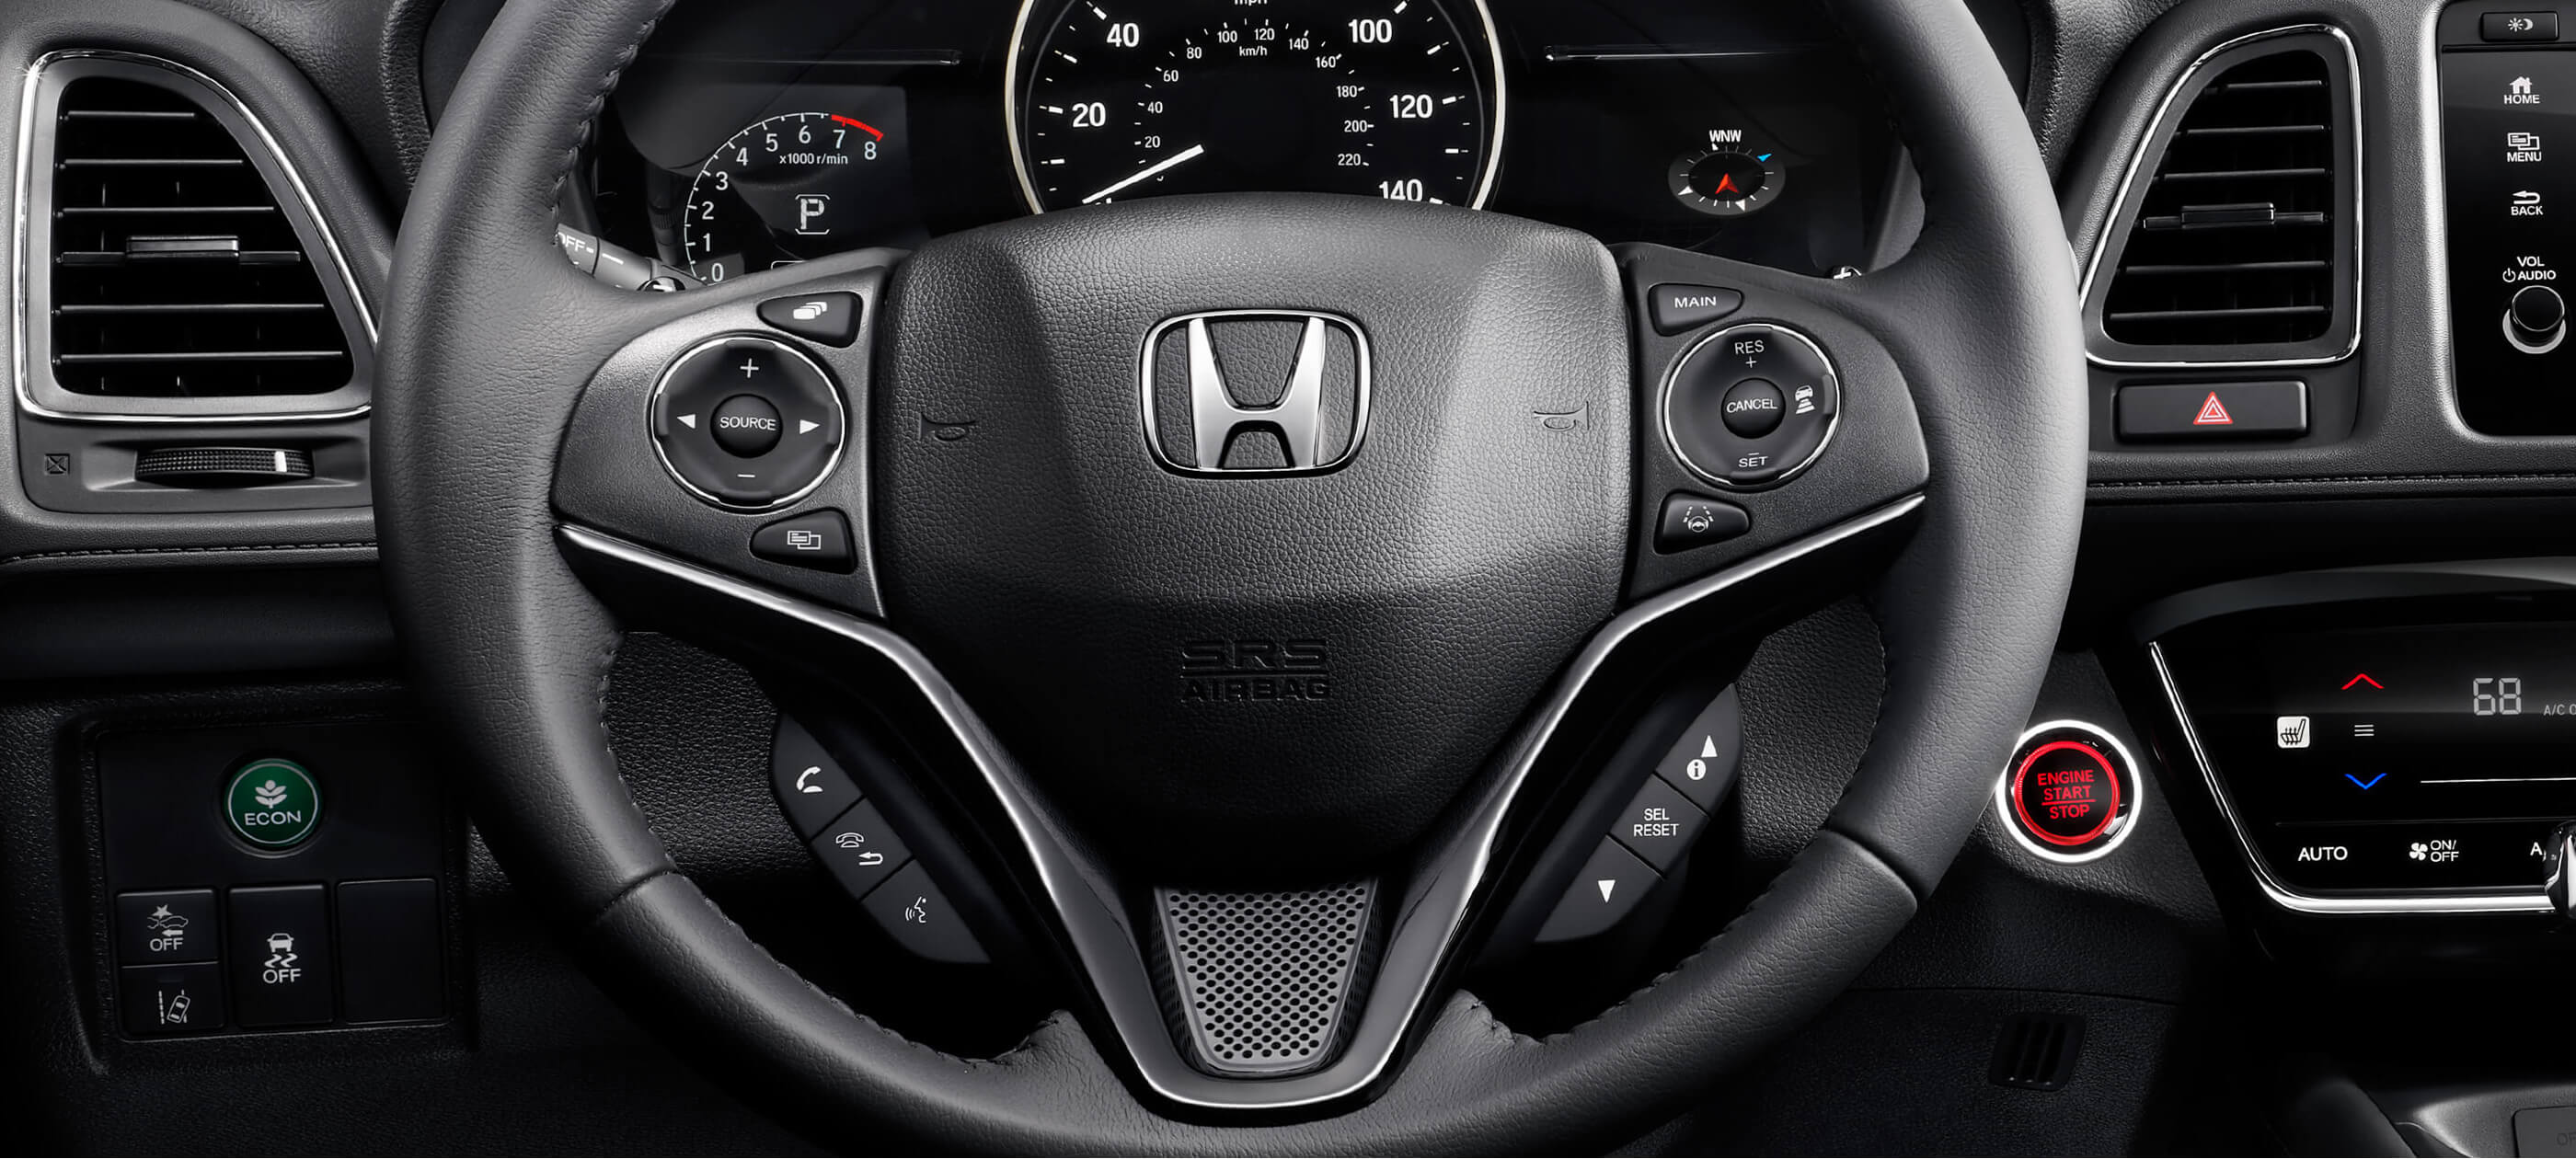 Leather-Wrapped Steering Wheel